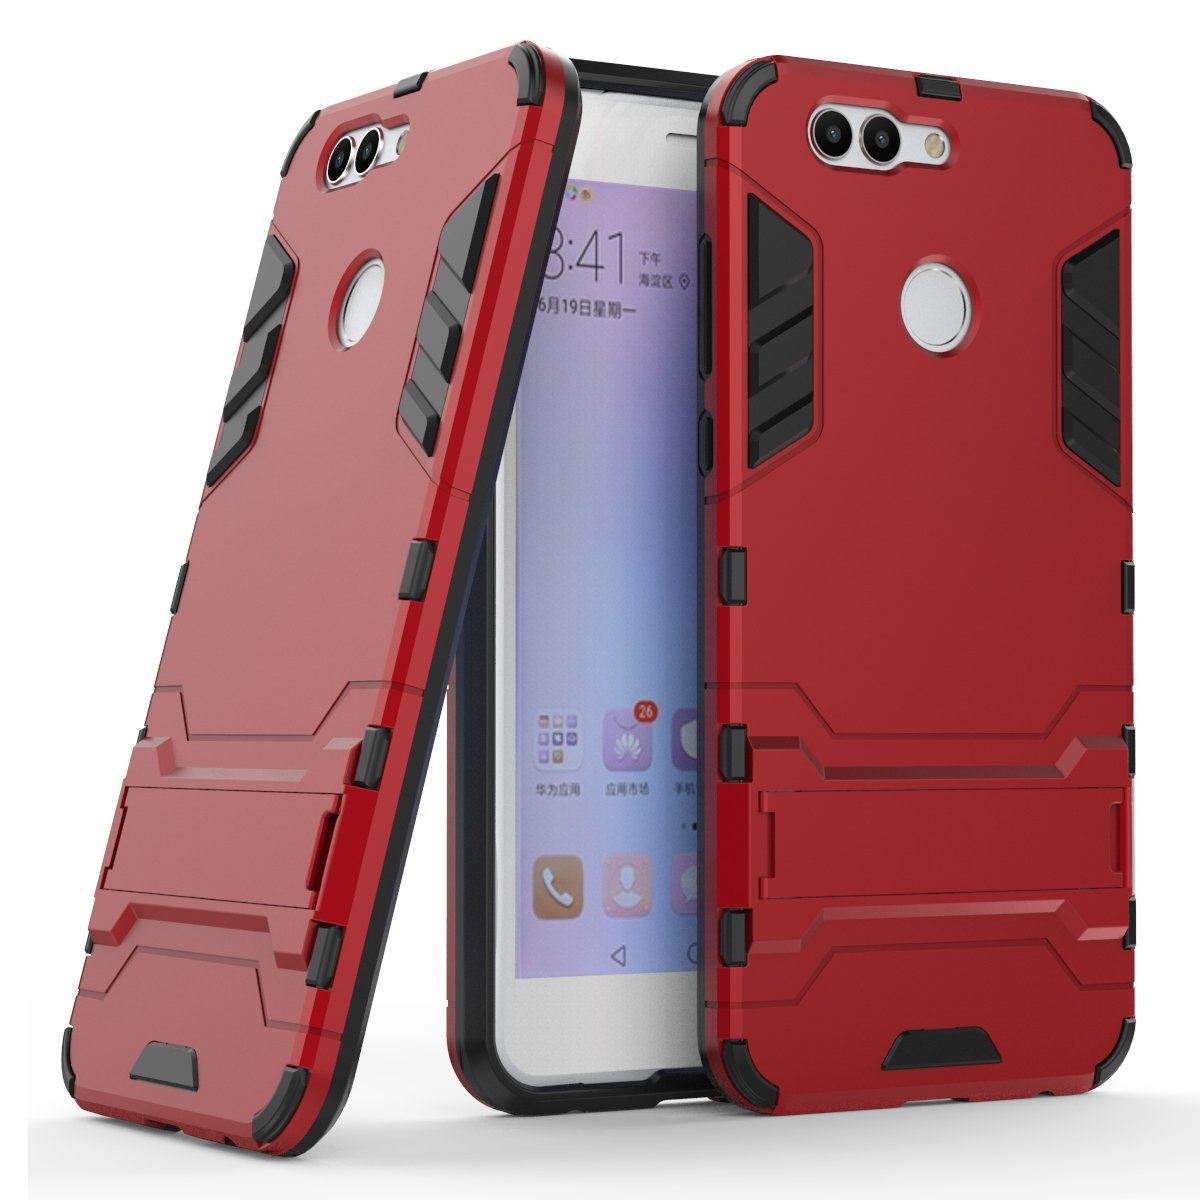 Amazon.com: Huawei Nova 2 Plus Case, Huawei Nova 2 Plus ...